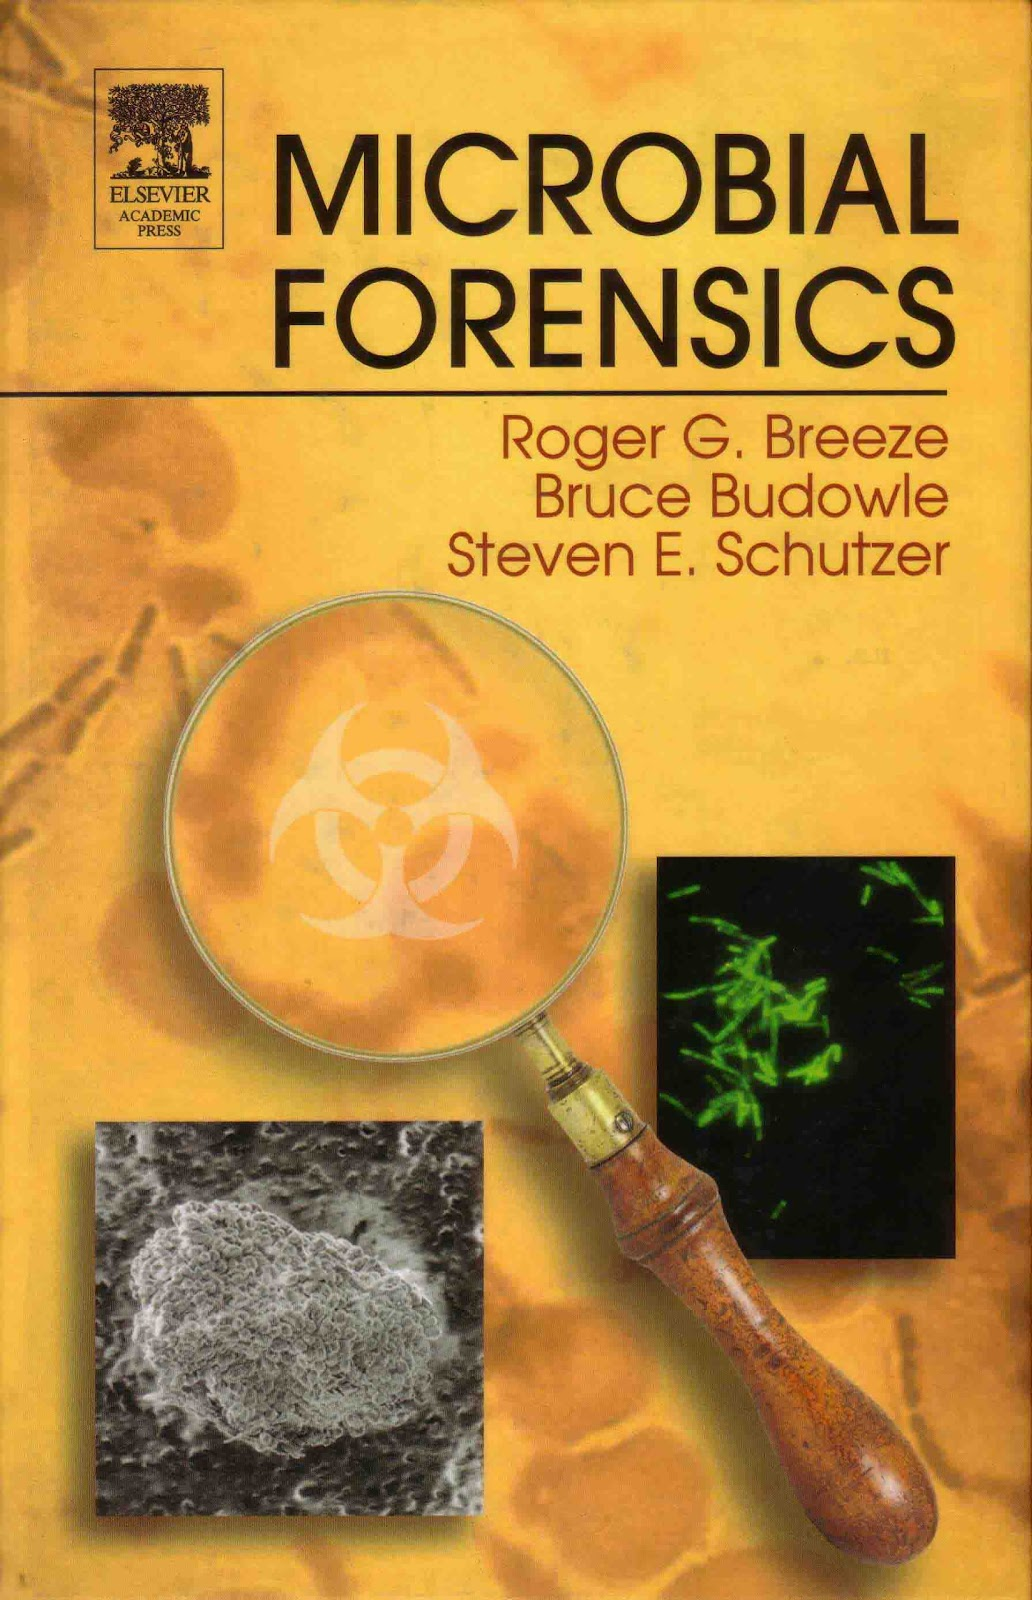 Molecular biology in forensic science research paper, need book suggestions!?